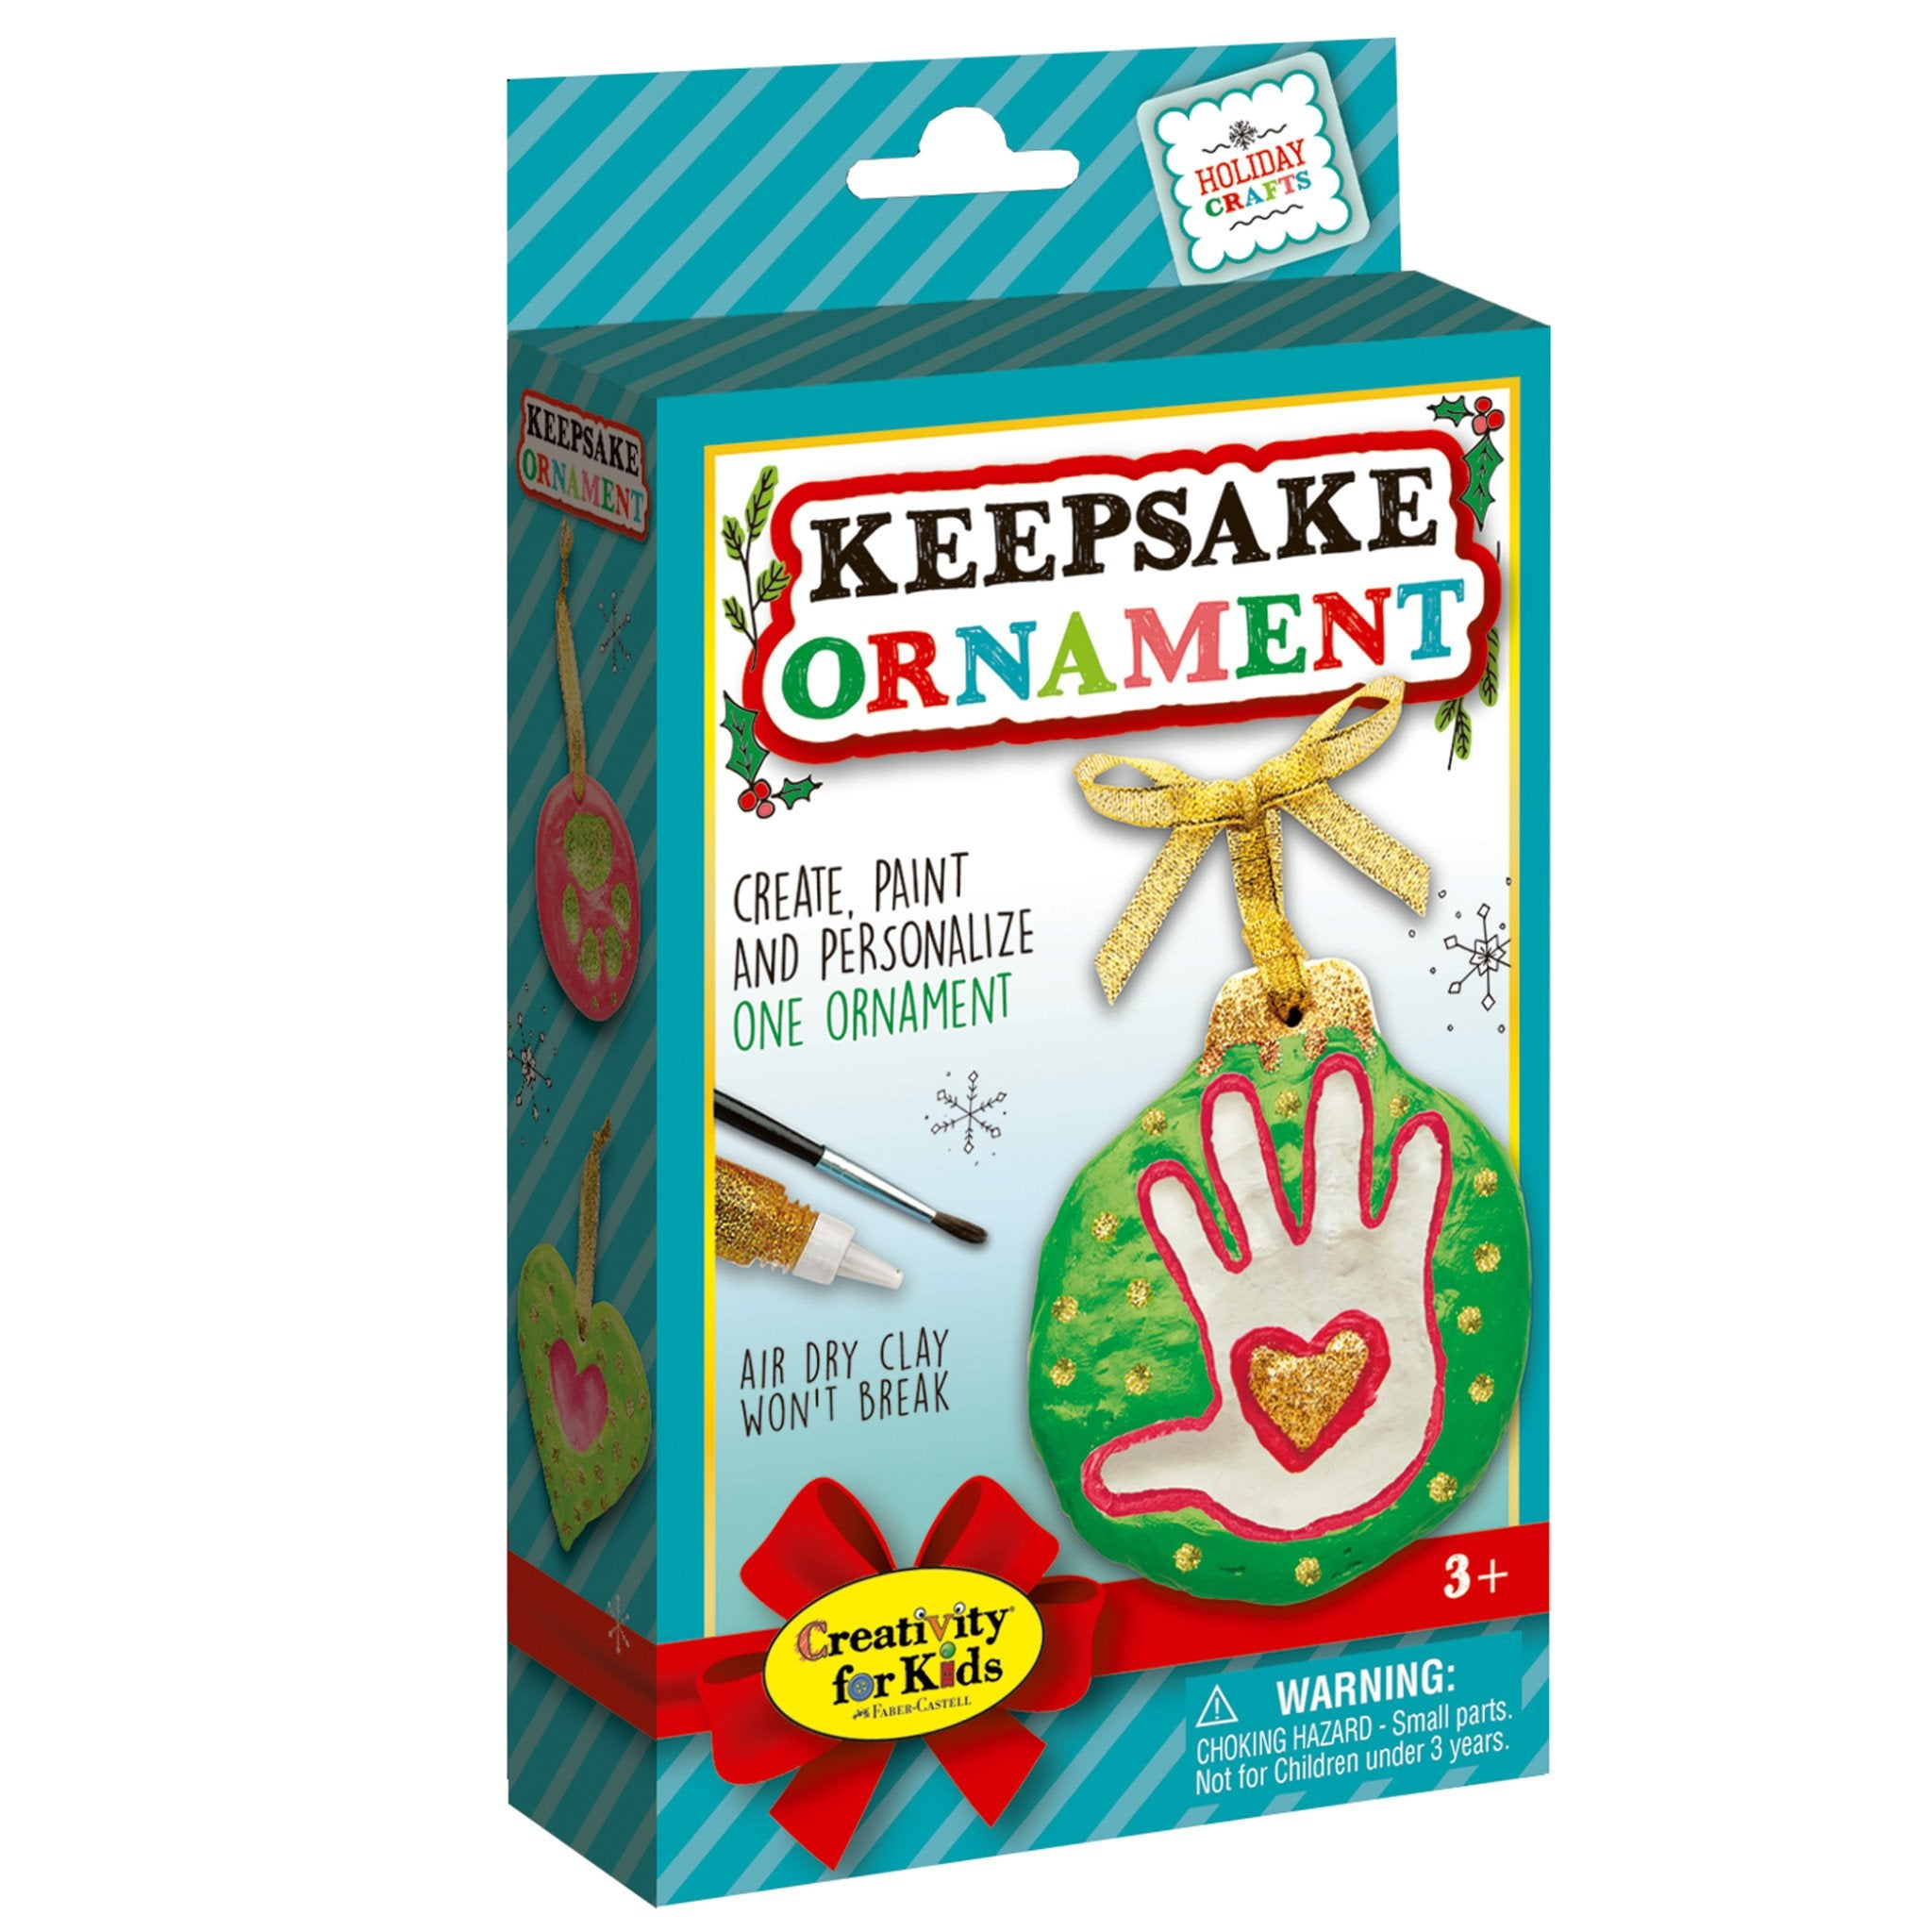 Keepsake Ornament (mini kit)